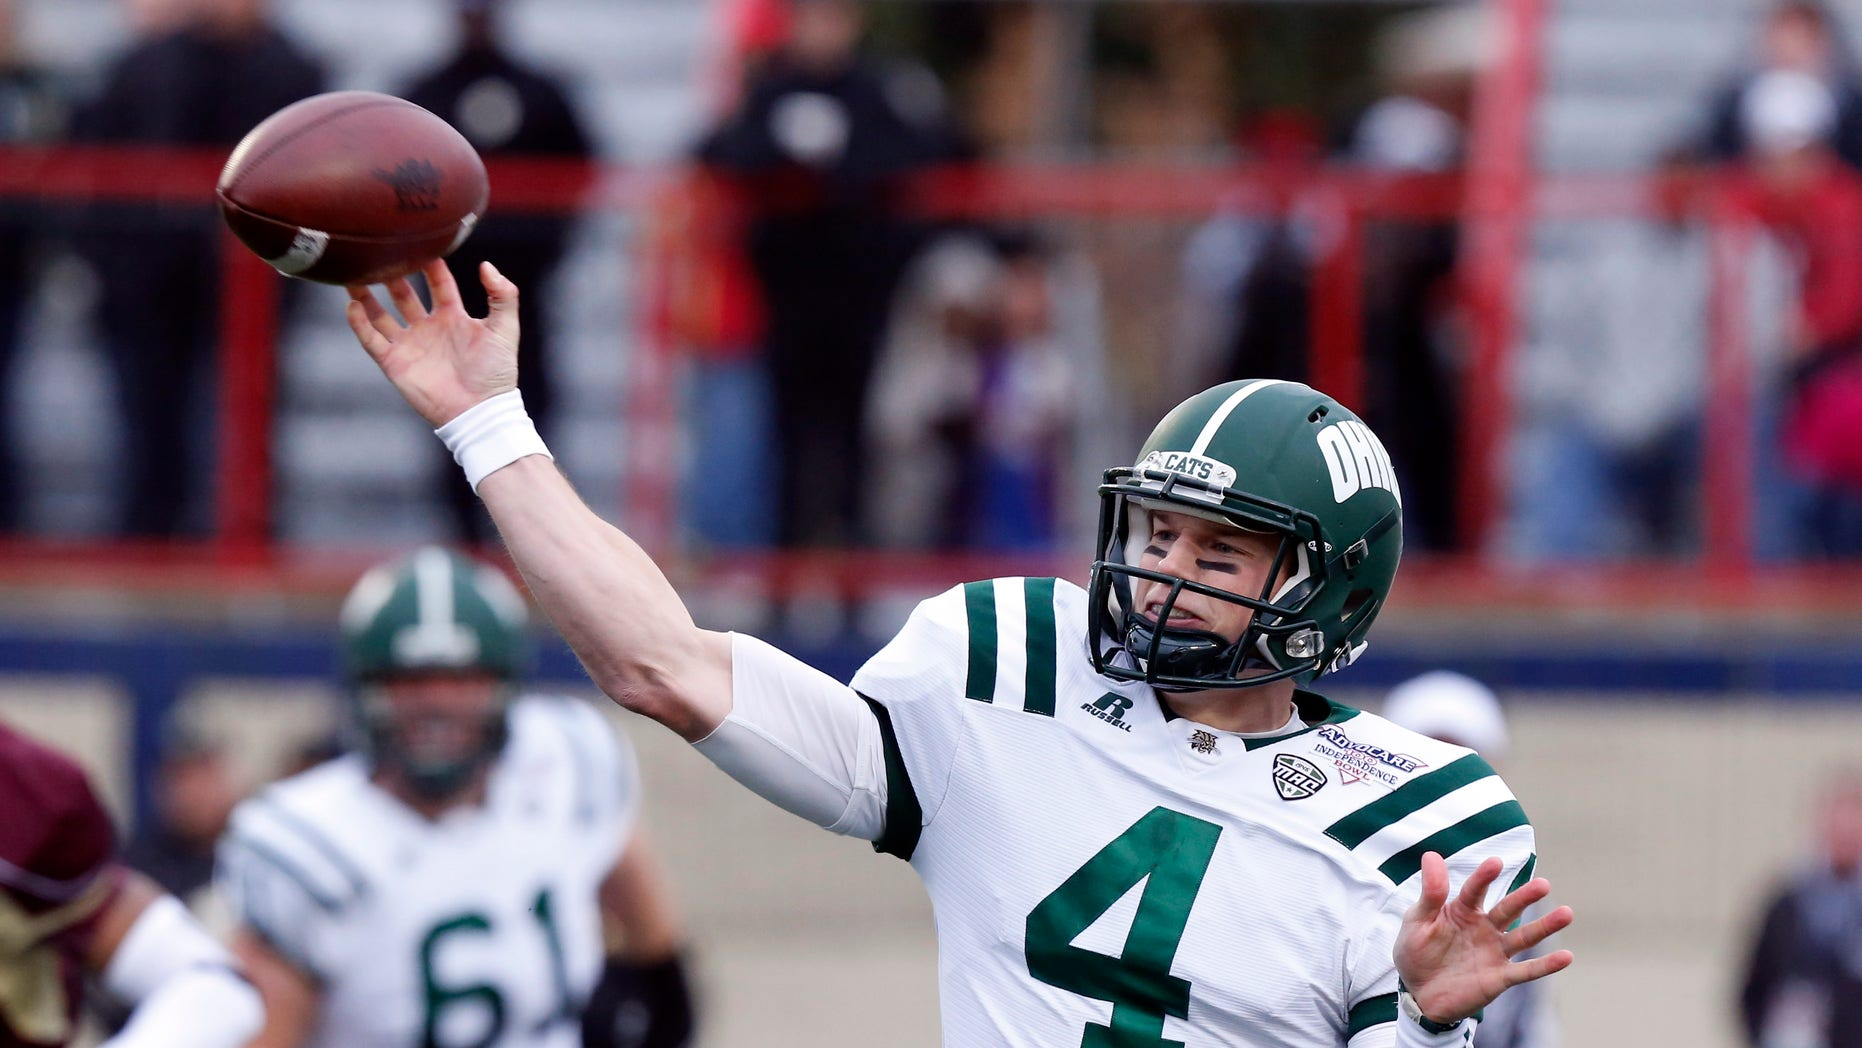 Ohio quarterback Tyler Tettleton (4) throws a short pass against Louisiana-Monroe during the first quarter of the Independence Bowl NCAA college football game in Shreveport, La., Friday, Dec. 28, 2012. (AP Photo/Rogelio V. Solis)